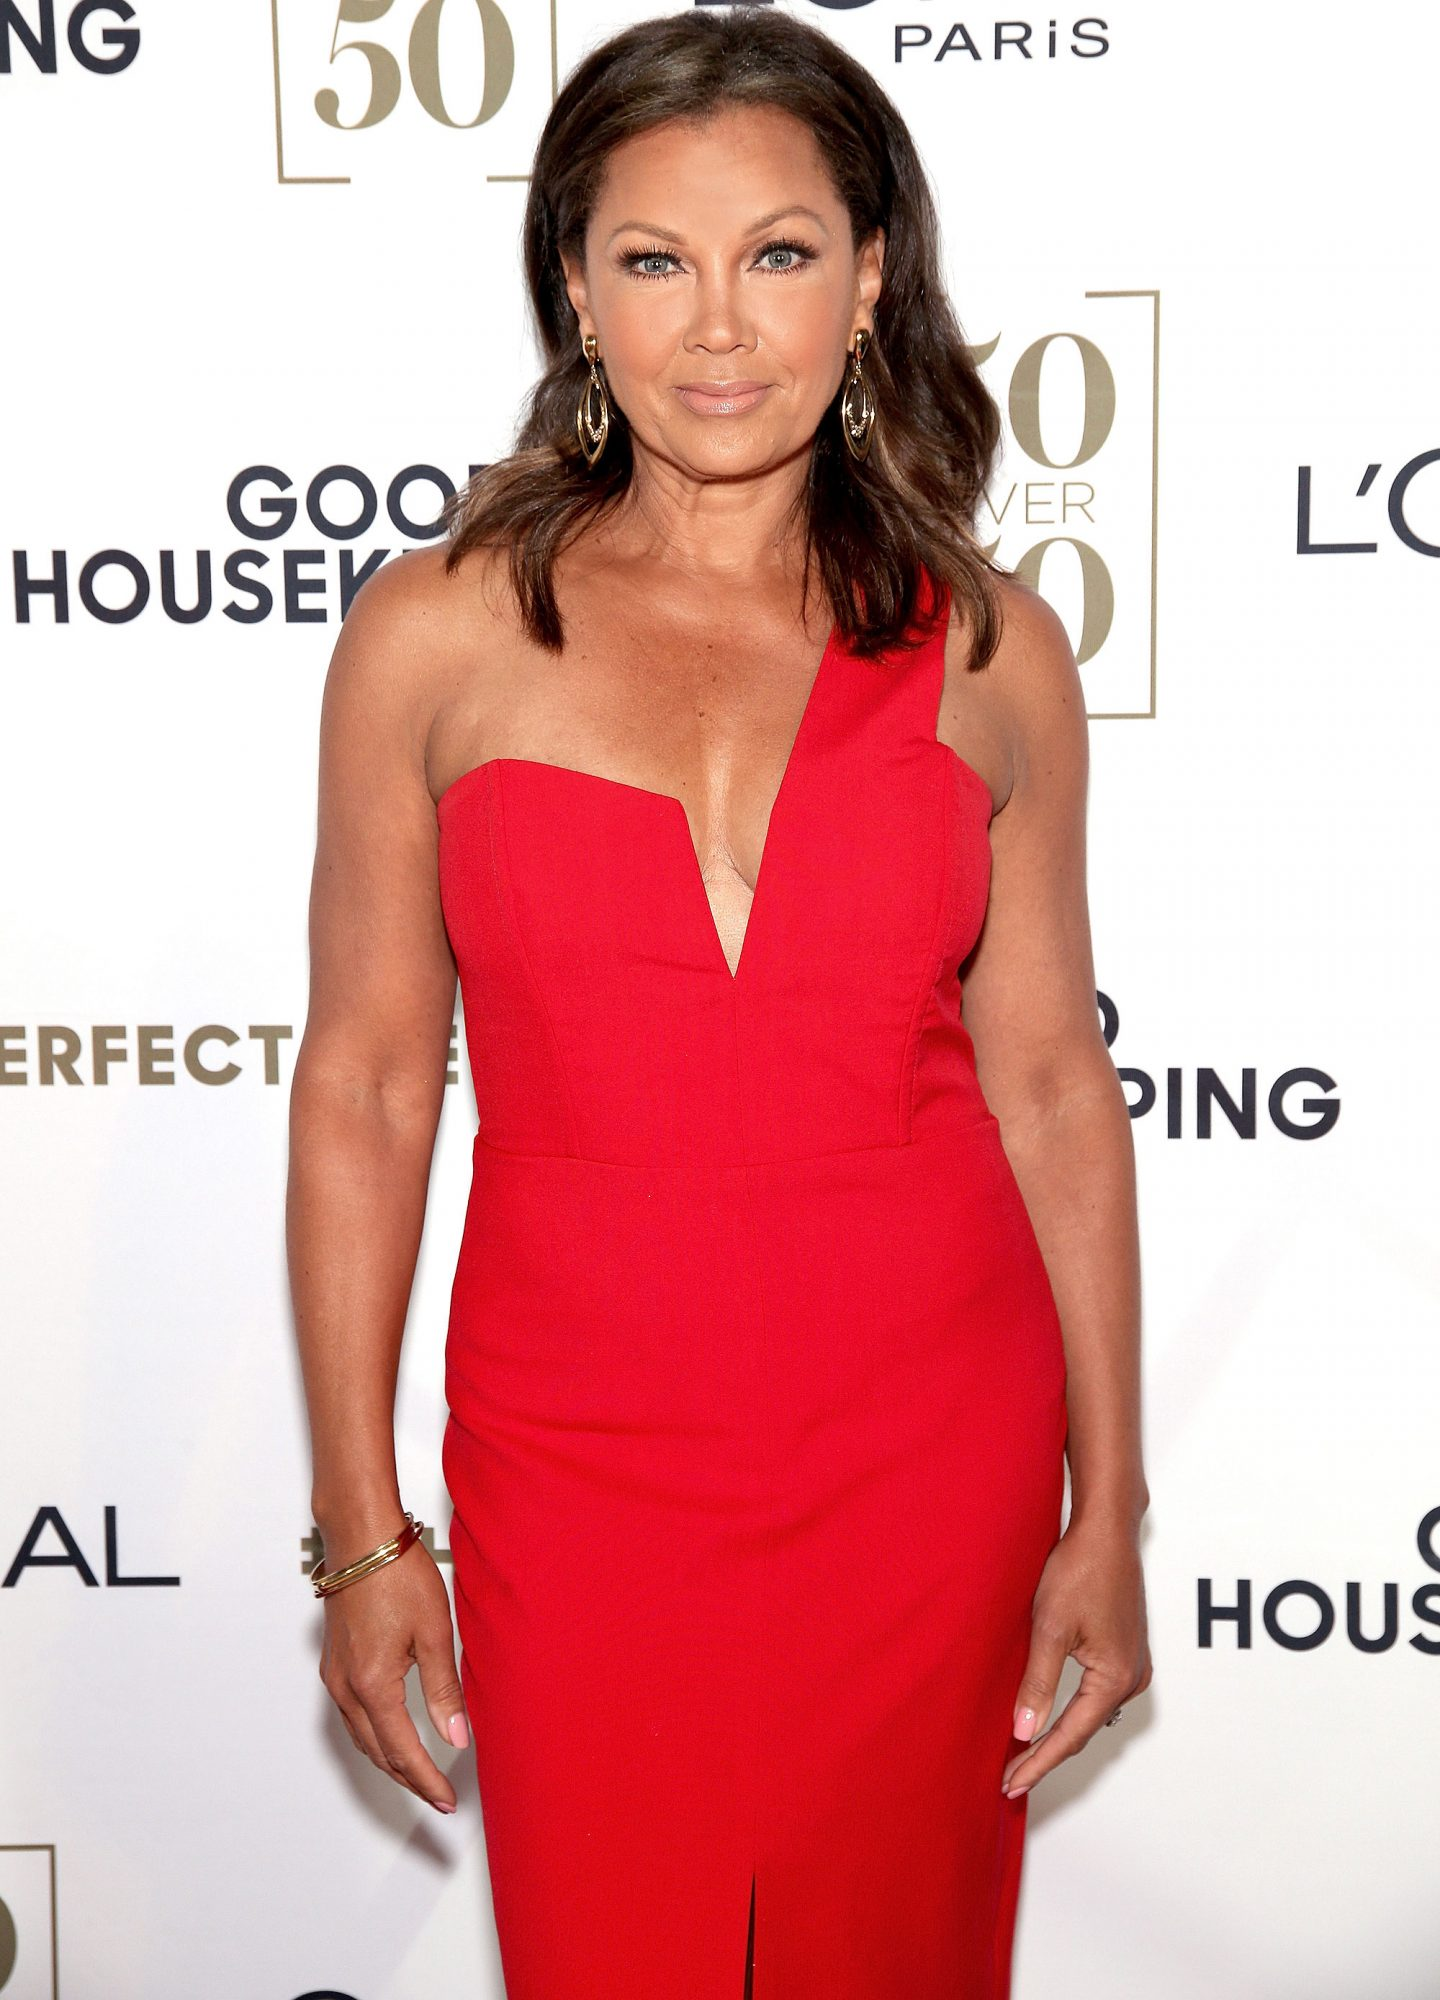 L'Oreal Paris & Good Housekeeping Celebrate 50 Over 50 Event At Hearst Tower In NYC